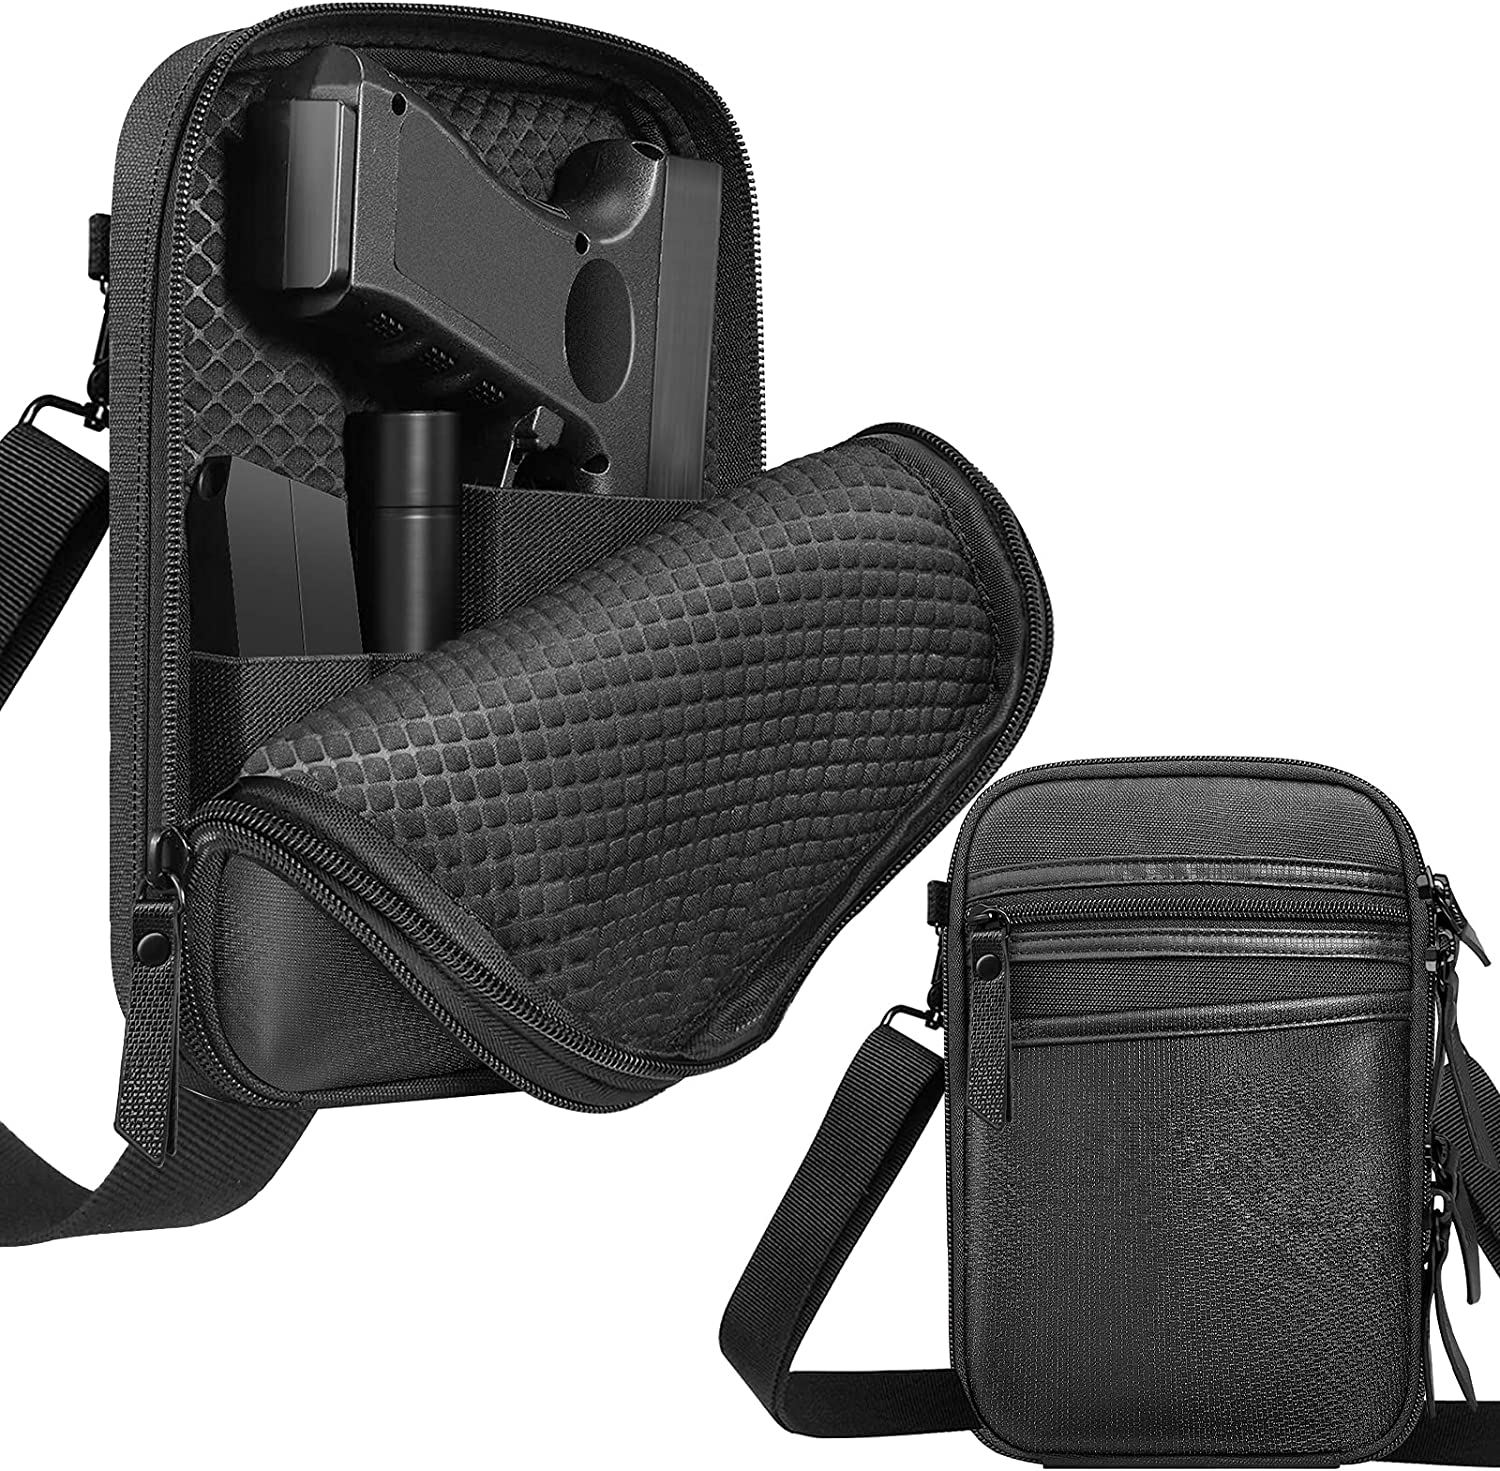 Quality inspection ZLiT Handguns Bag Concealed Pistol Direct sale of manufacturer Pouch Carry for